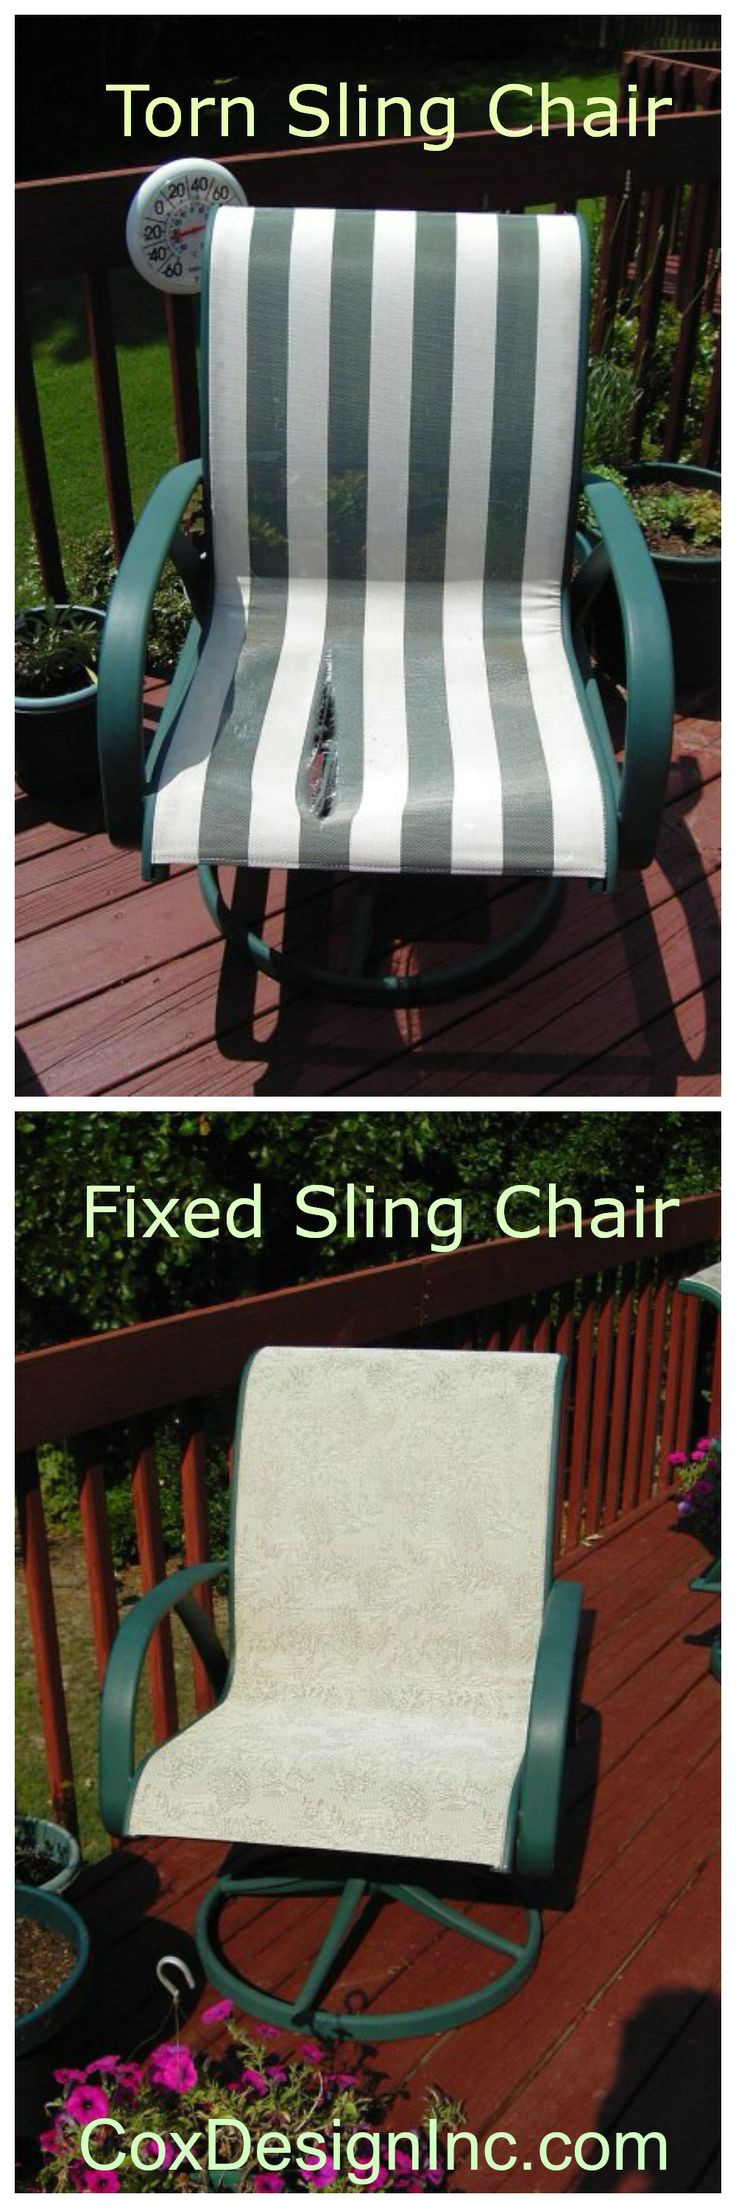 we can replace the fabric in sling type chairs to make them look new again